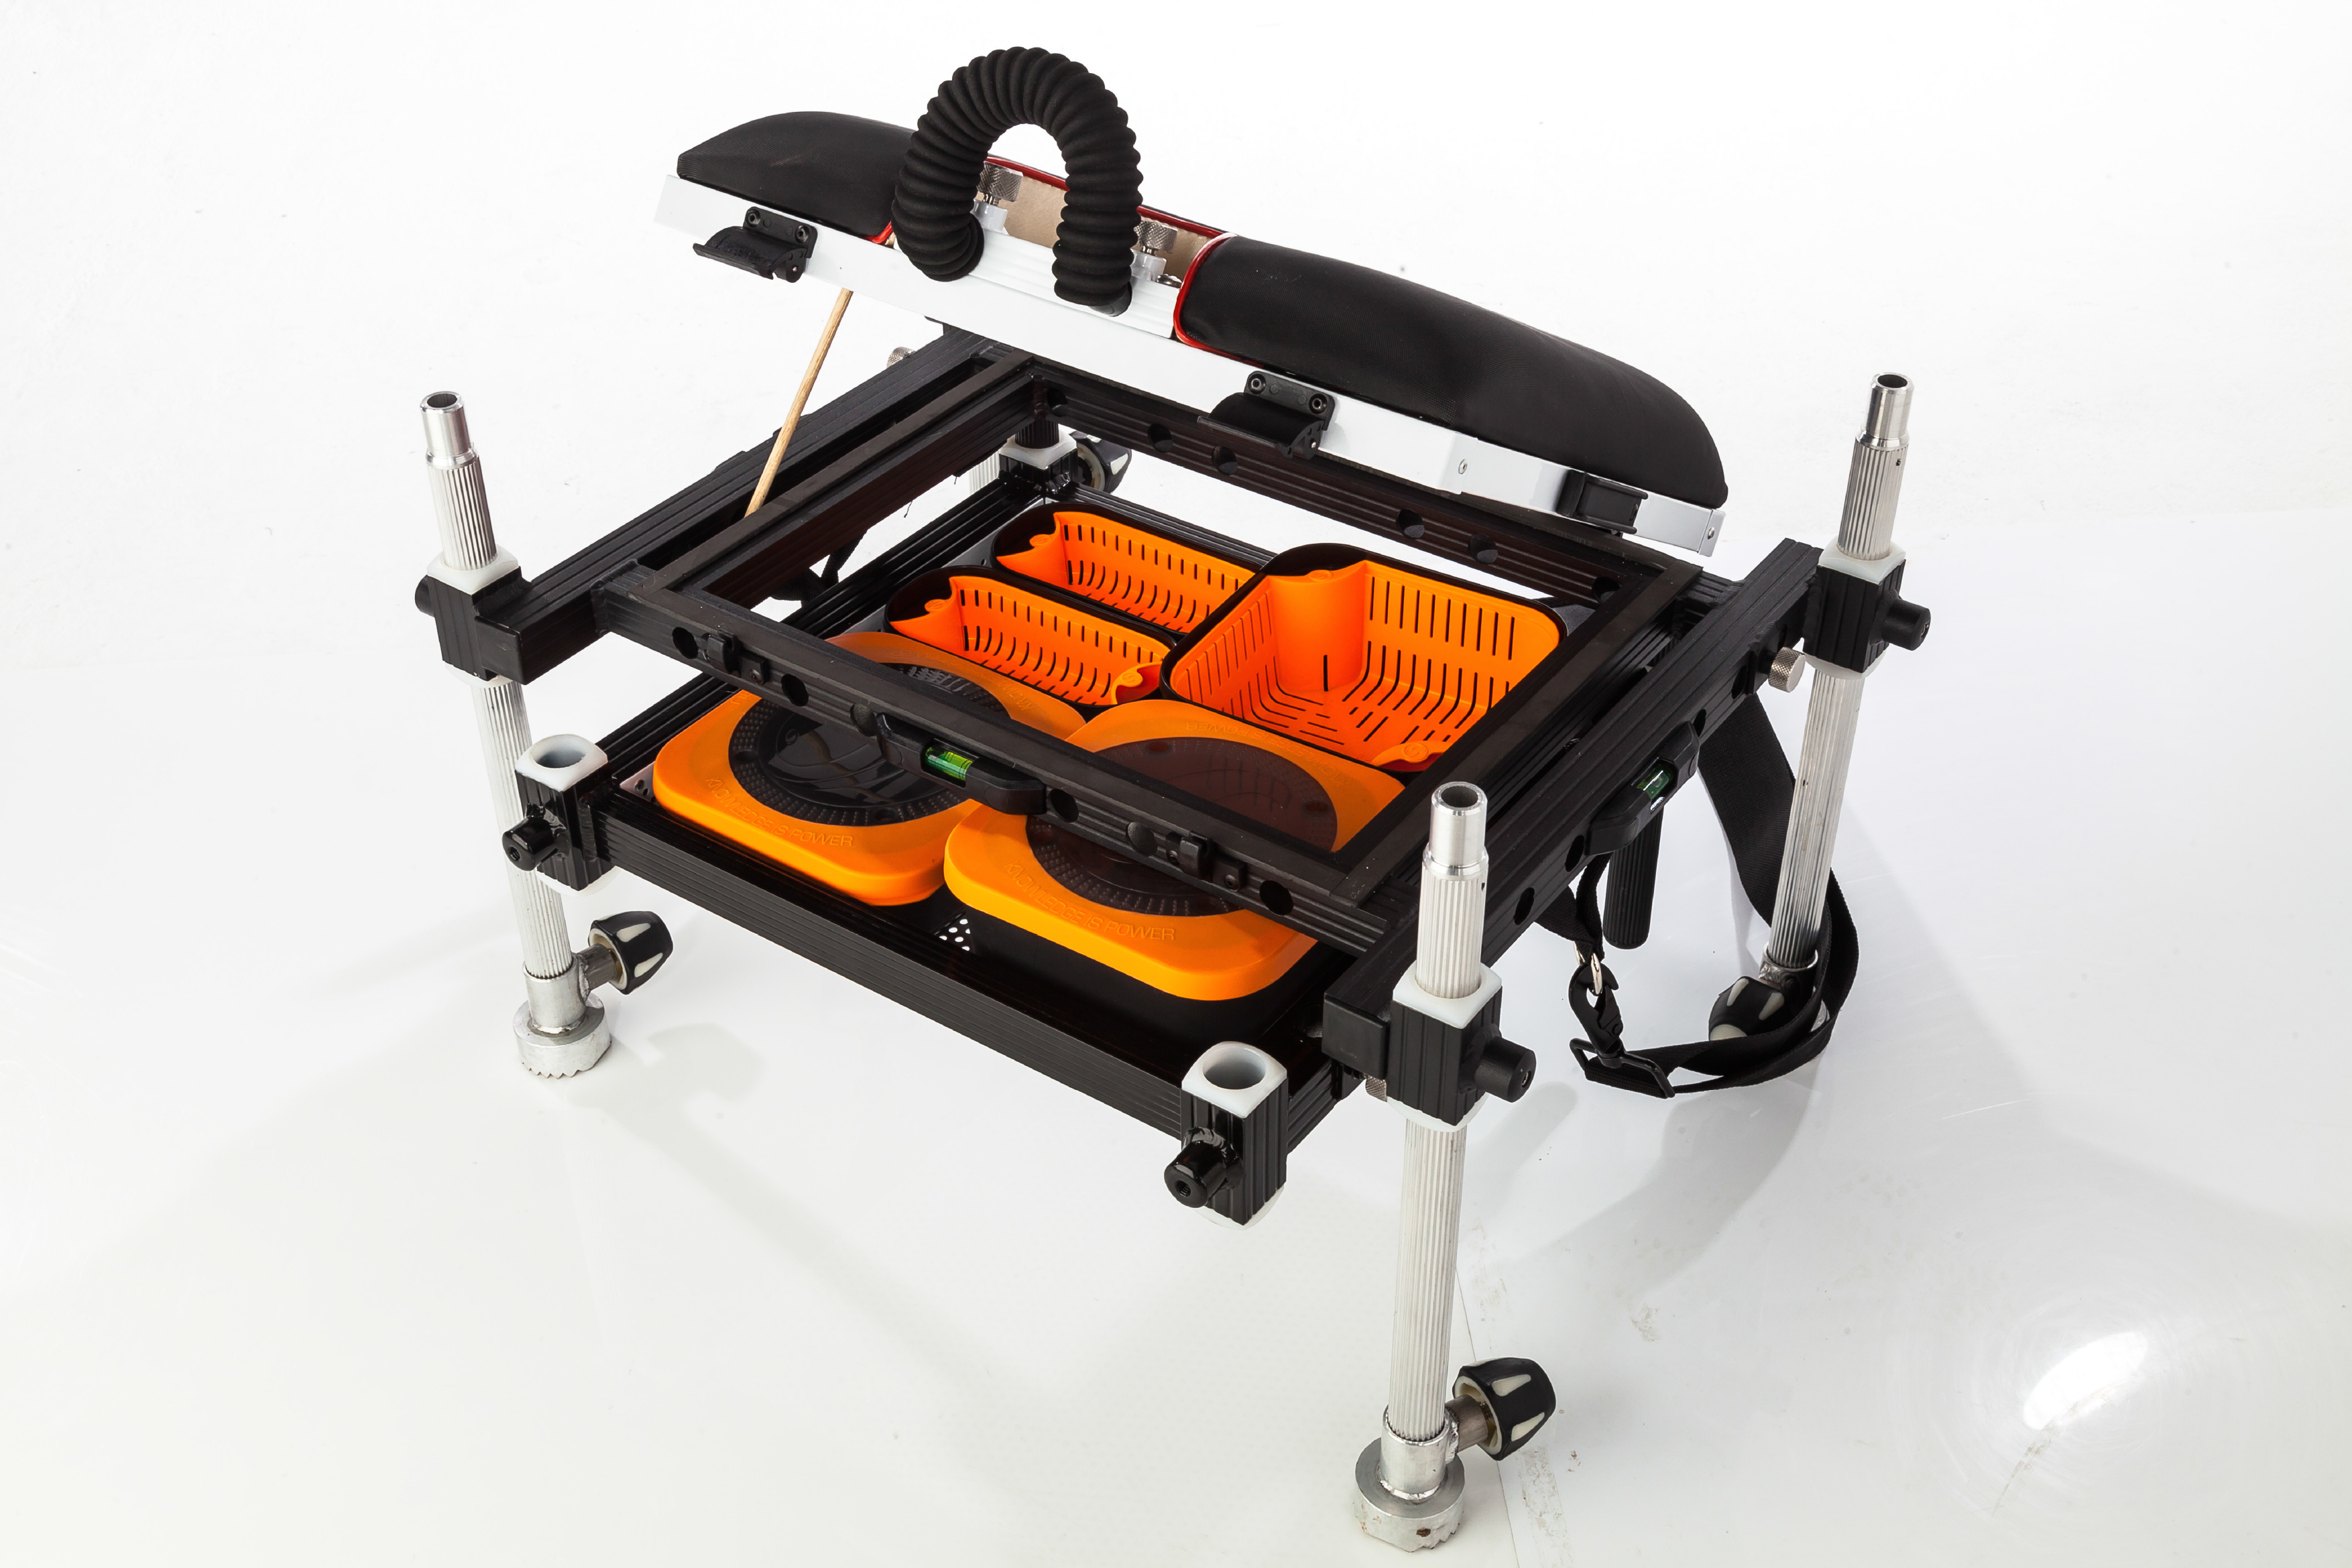 Octbox premier fishing seatboxes set to star on TV